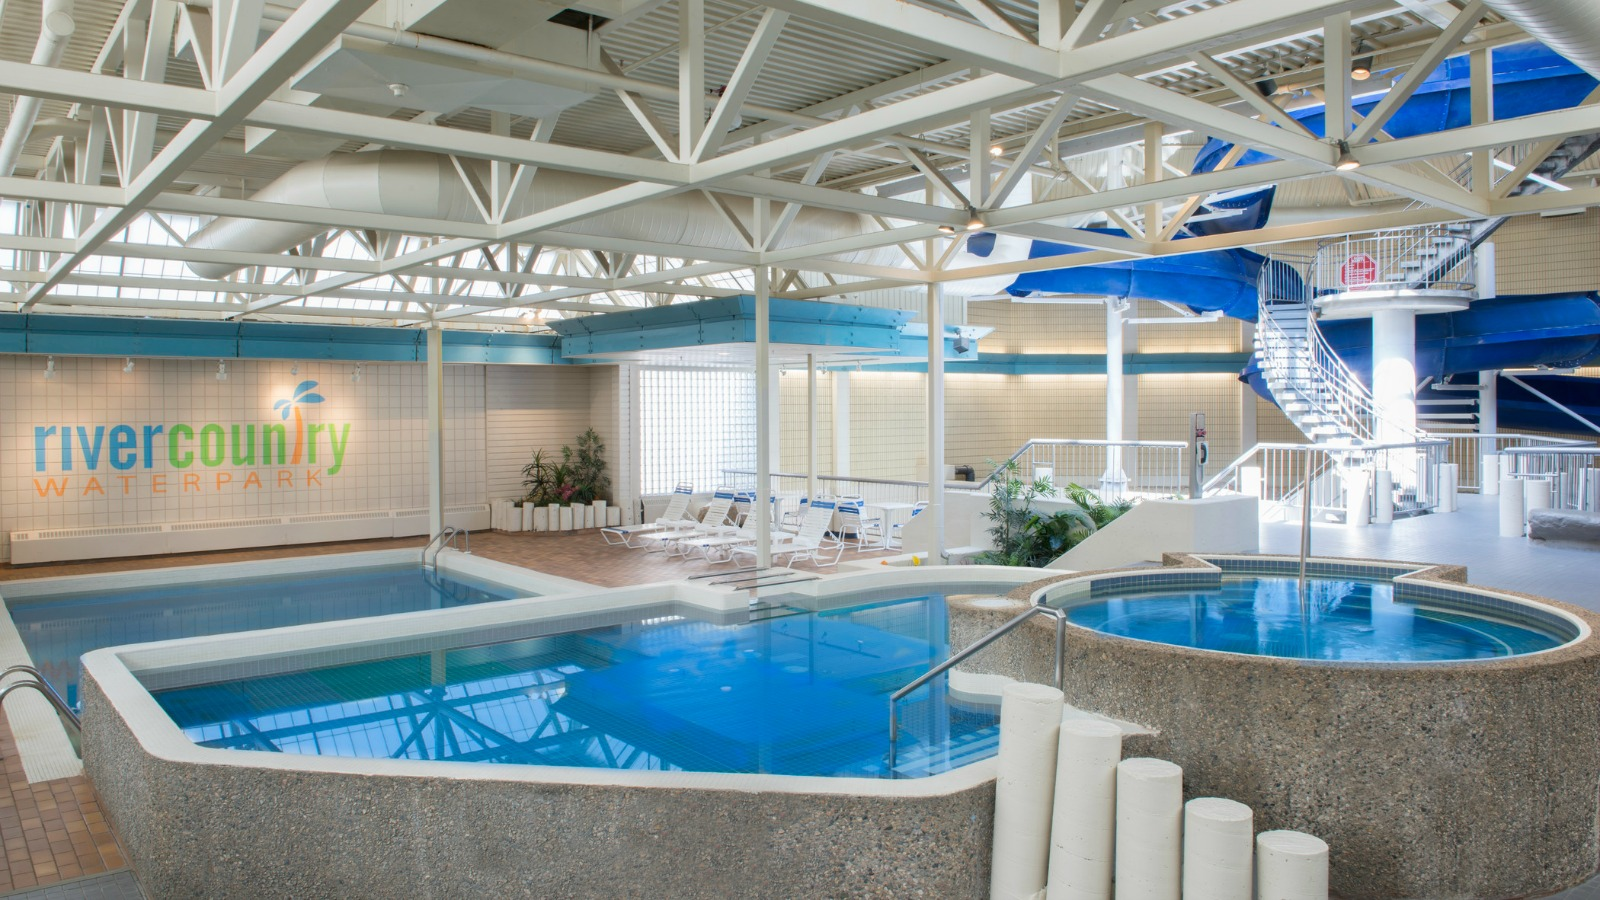 Saskatoon Family Hotels - River Country Water Park Pool